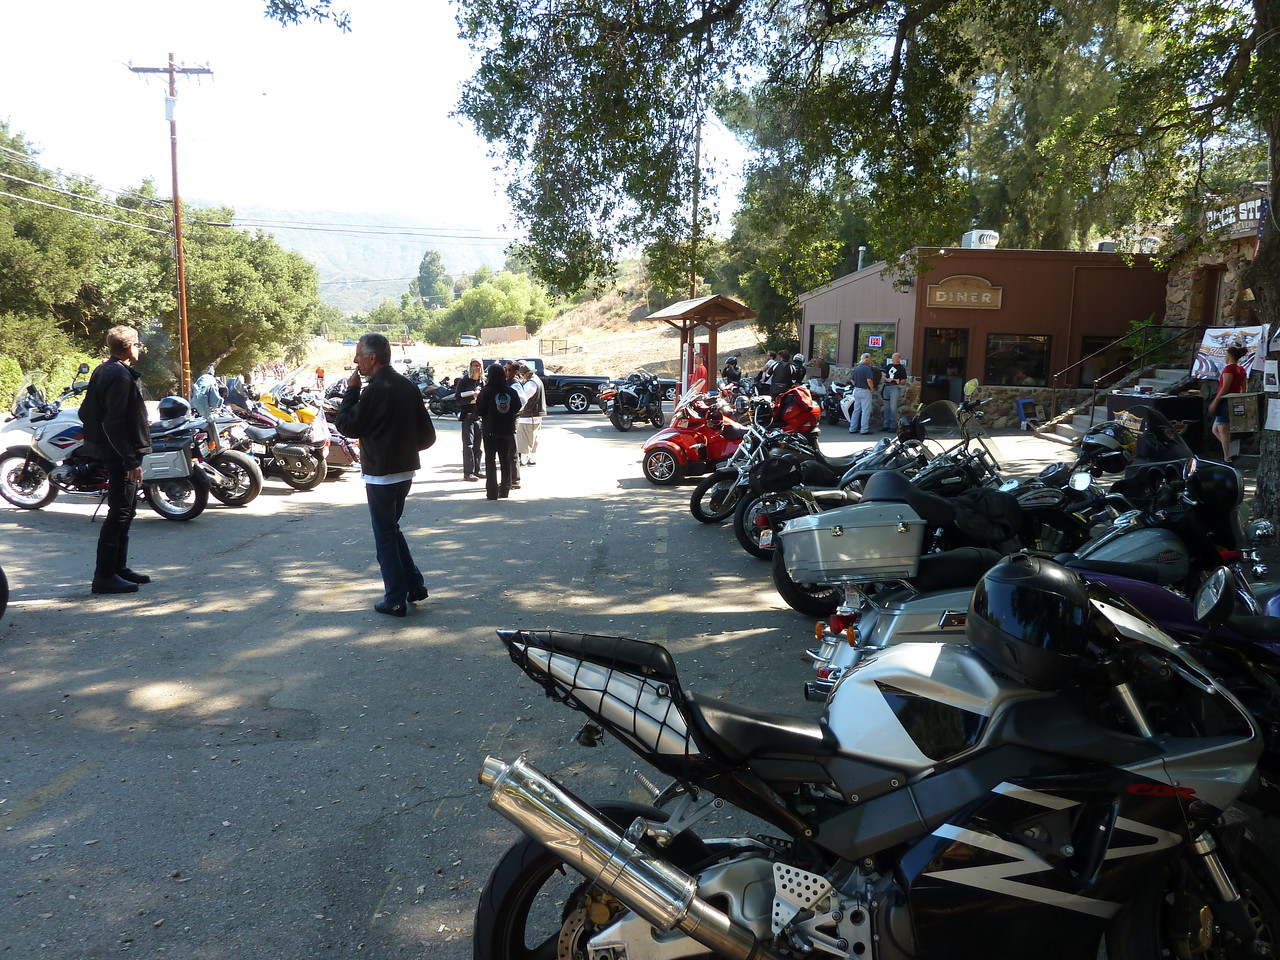 Bikes at Rock Store on Mulholland.